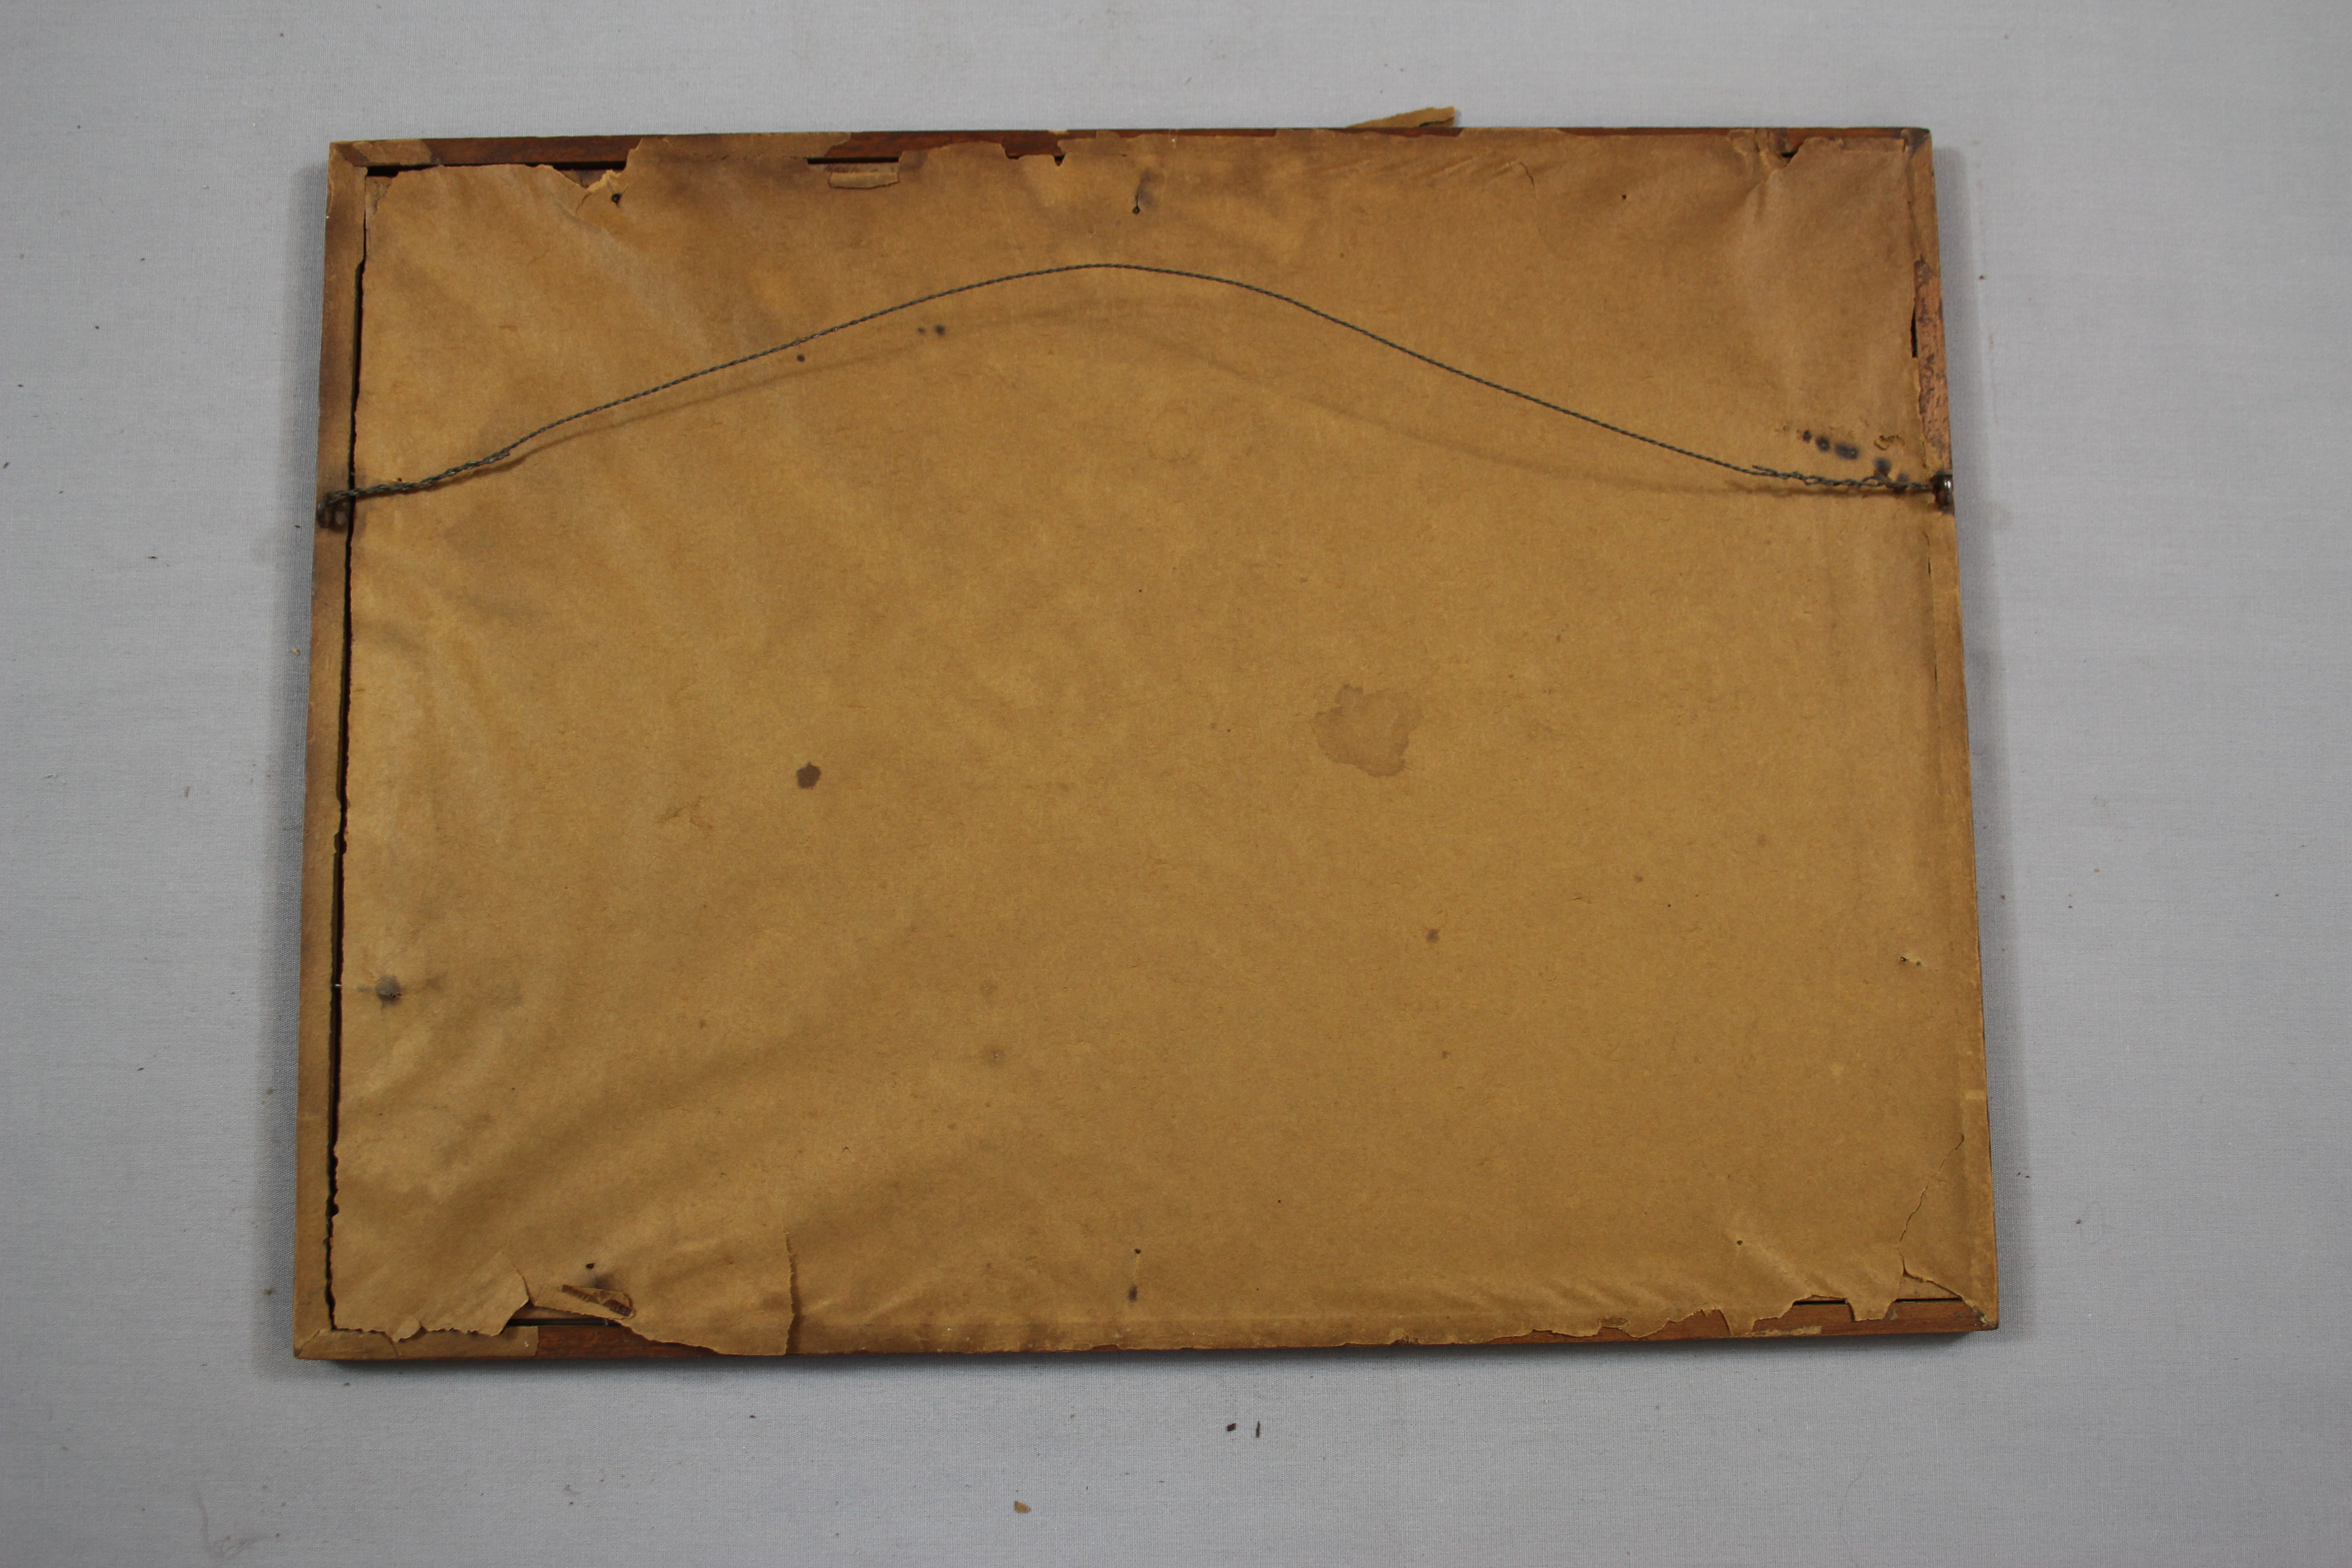 reframing using archival materials, sealed frame, conservation of framed art, dust cover, non-sealed frame